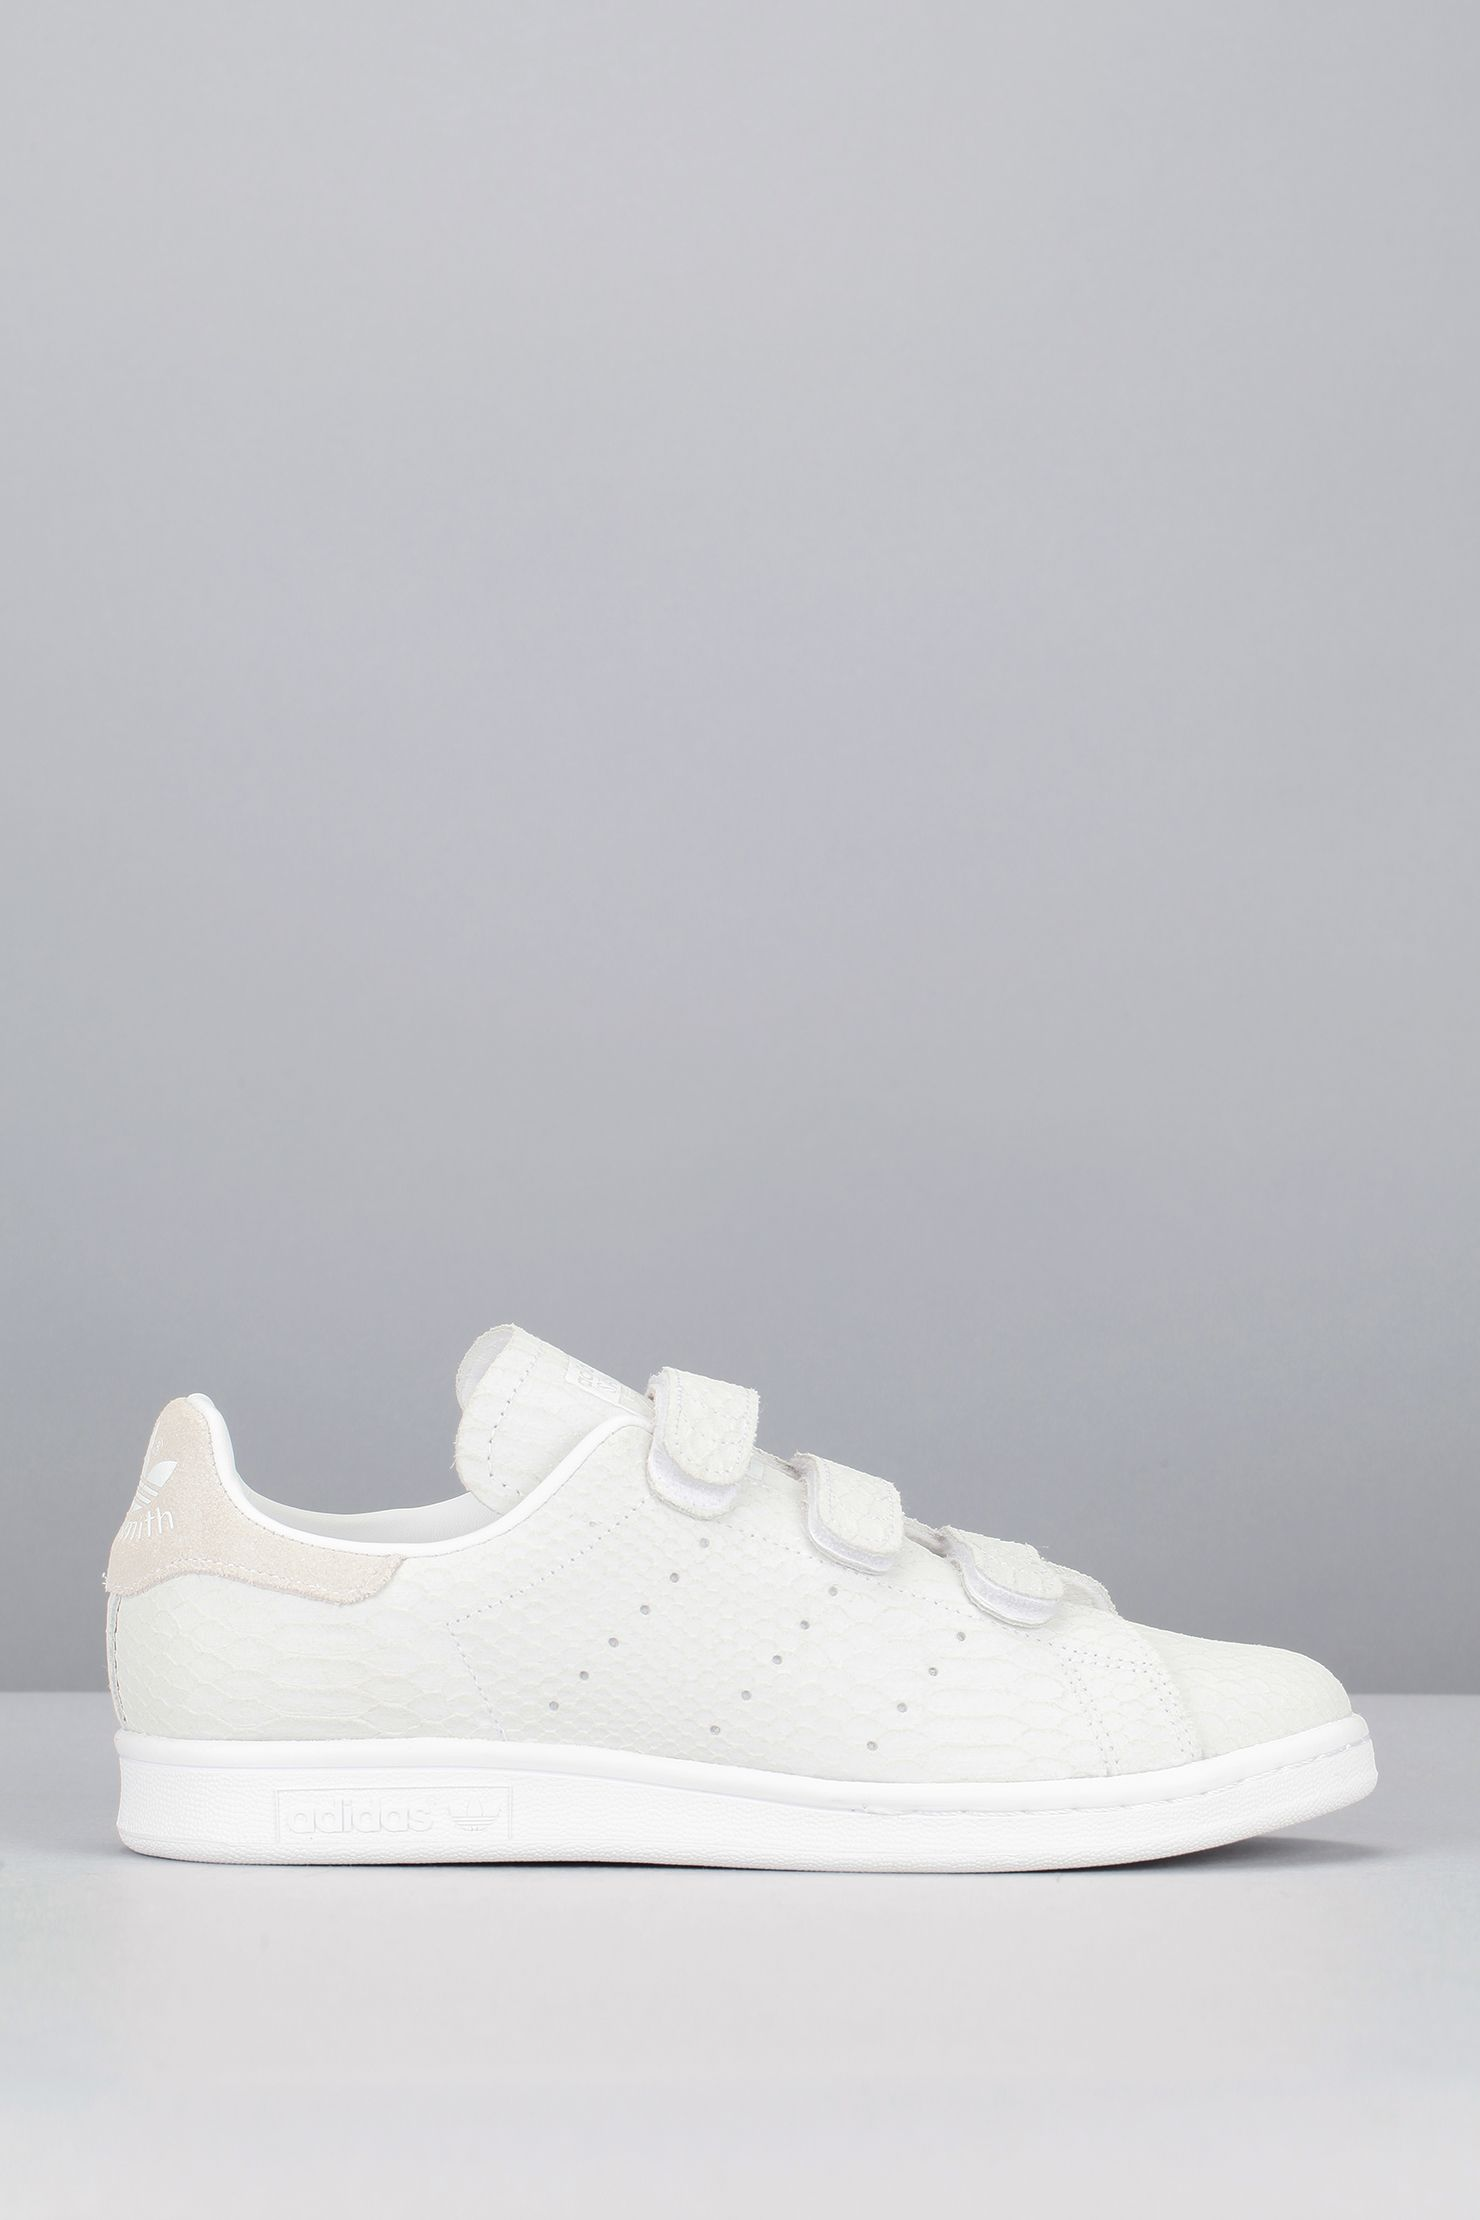 sneakers cuir blanc reptile scratch stan smith cf w shoes pinterest chaussure chaussures. Black Bedroom Furniture Sets. Home Design Ideas